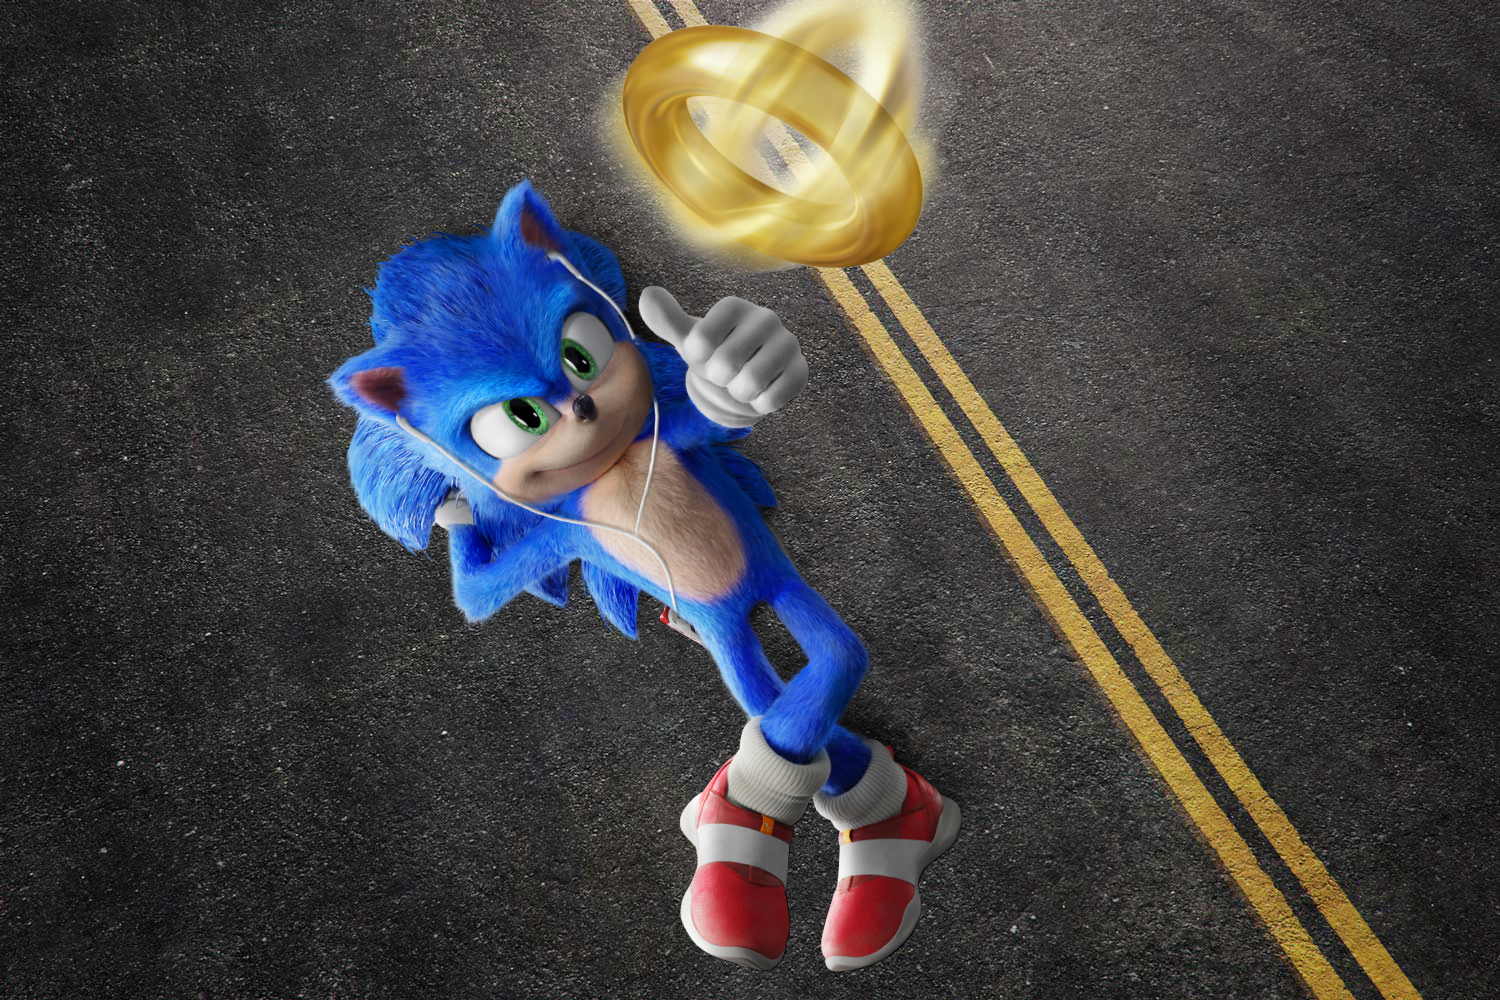 Sonic The Hedgehog By Hdgraphicvlad2010ful On Deviantart Sonic The Hedgehog Sonic Hedgehog Movie